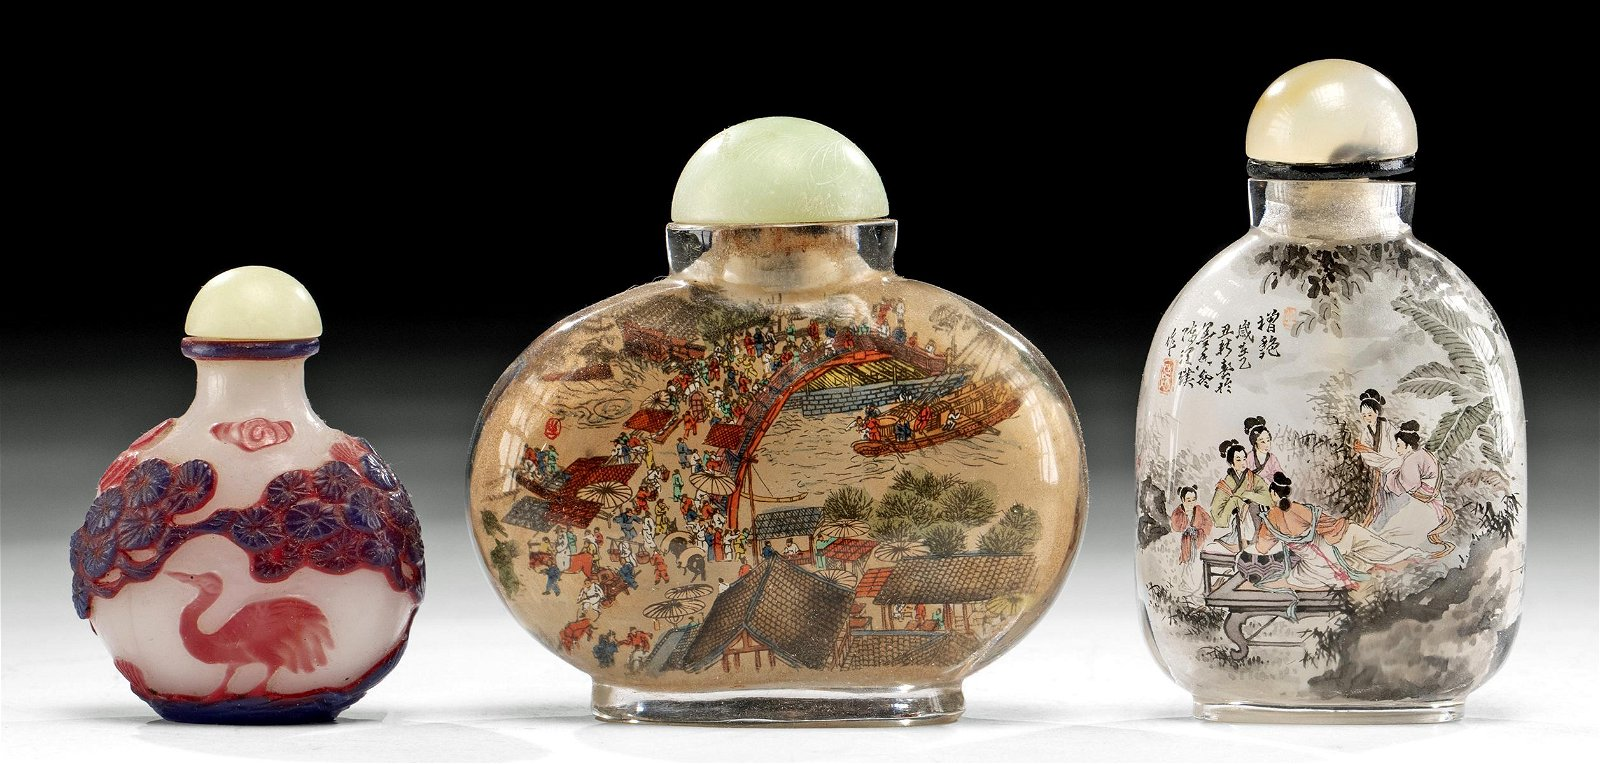 Lot of 3 Chinese Qing Dynasty Glass Snuff Bottles